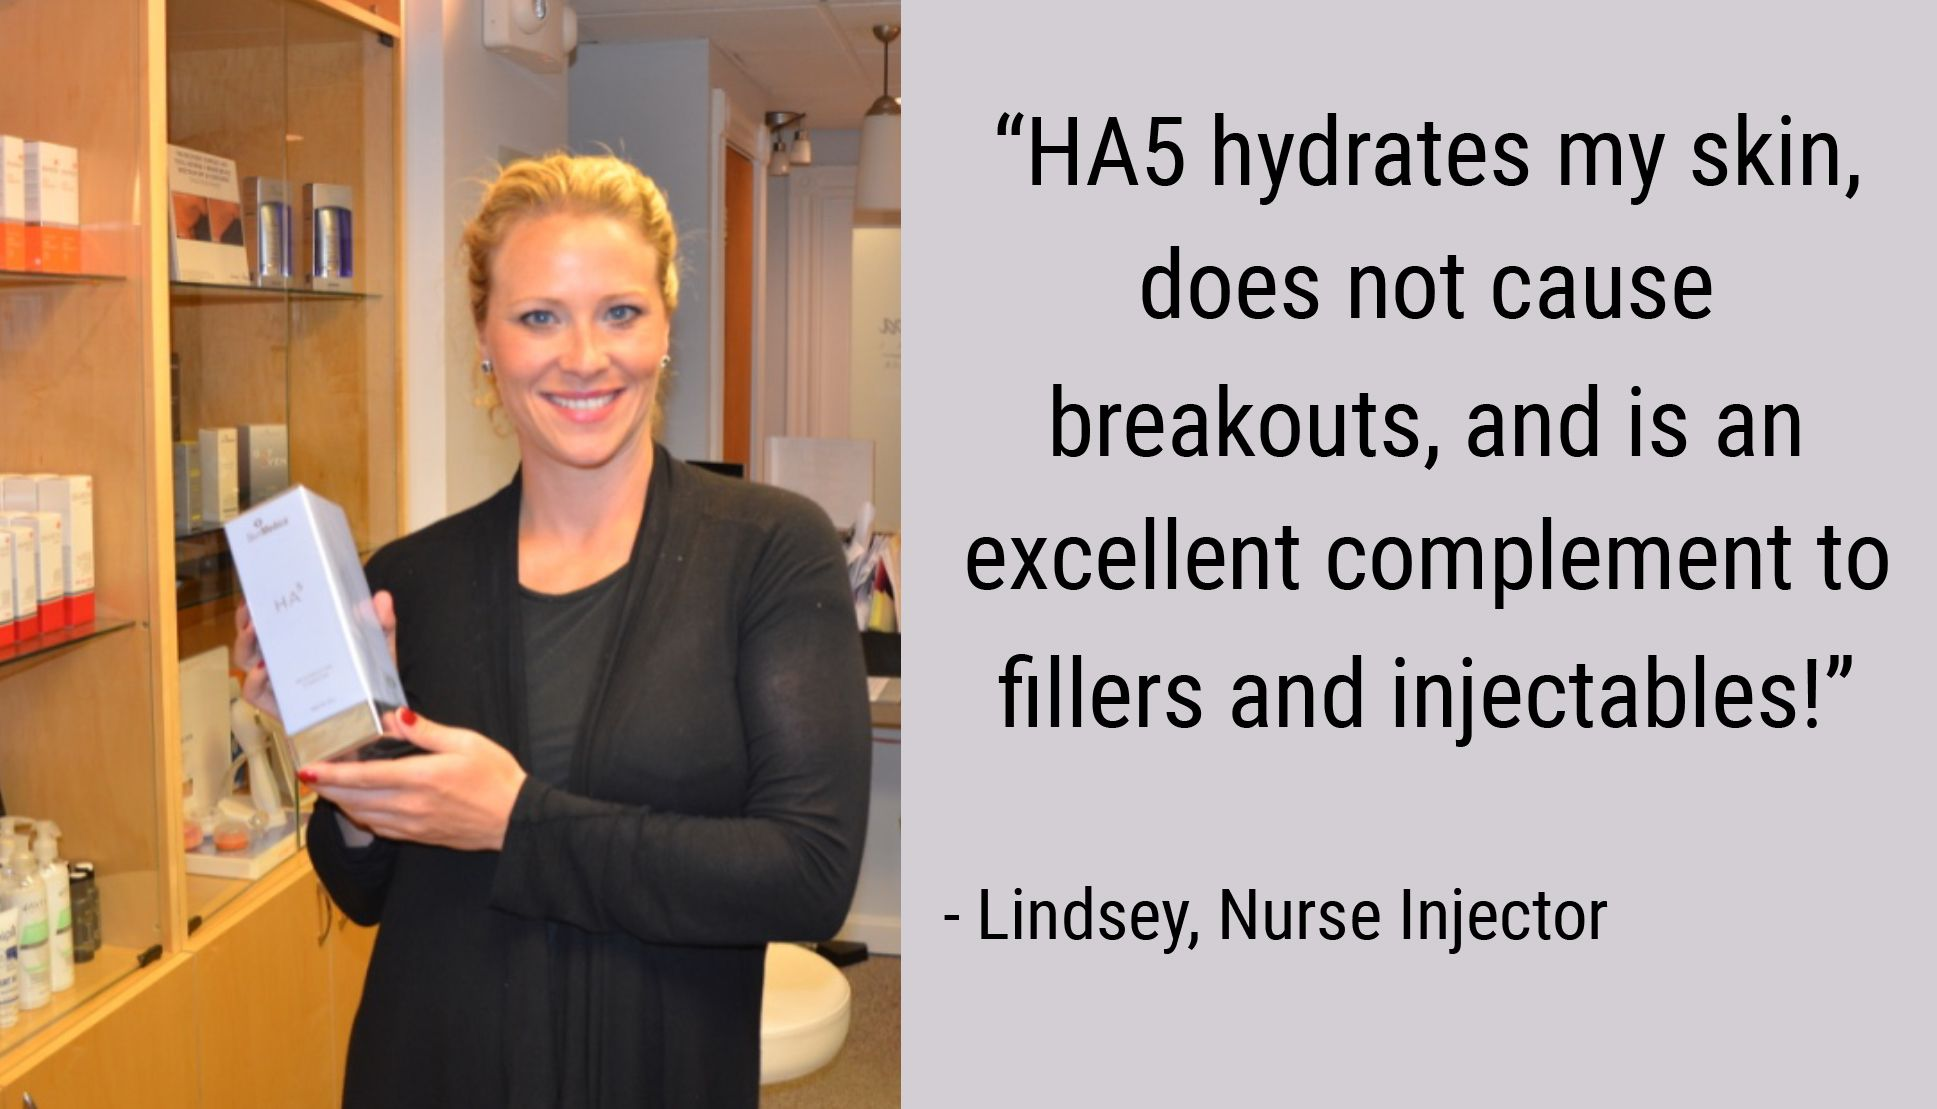 Lindsey is a certified nurse injector specializing in